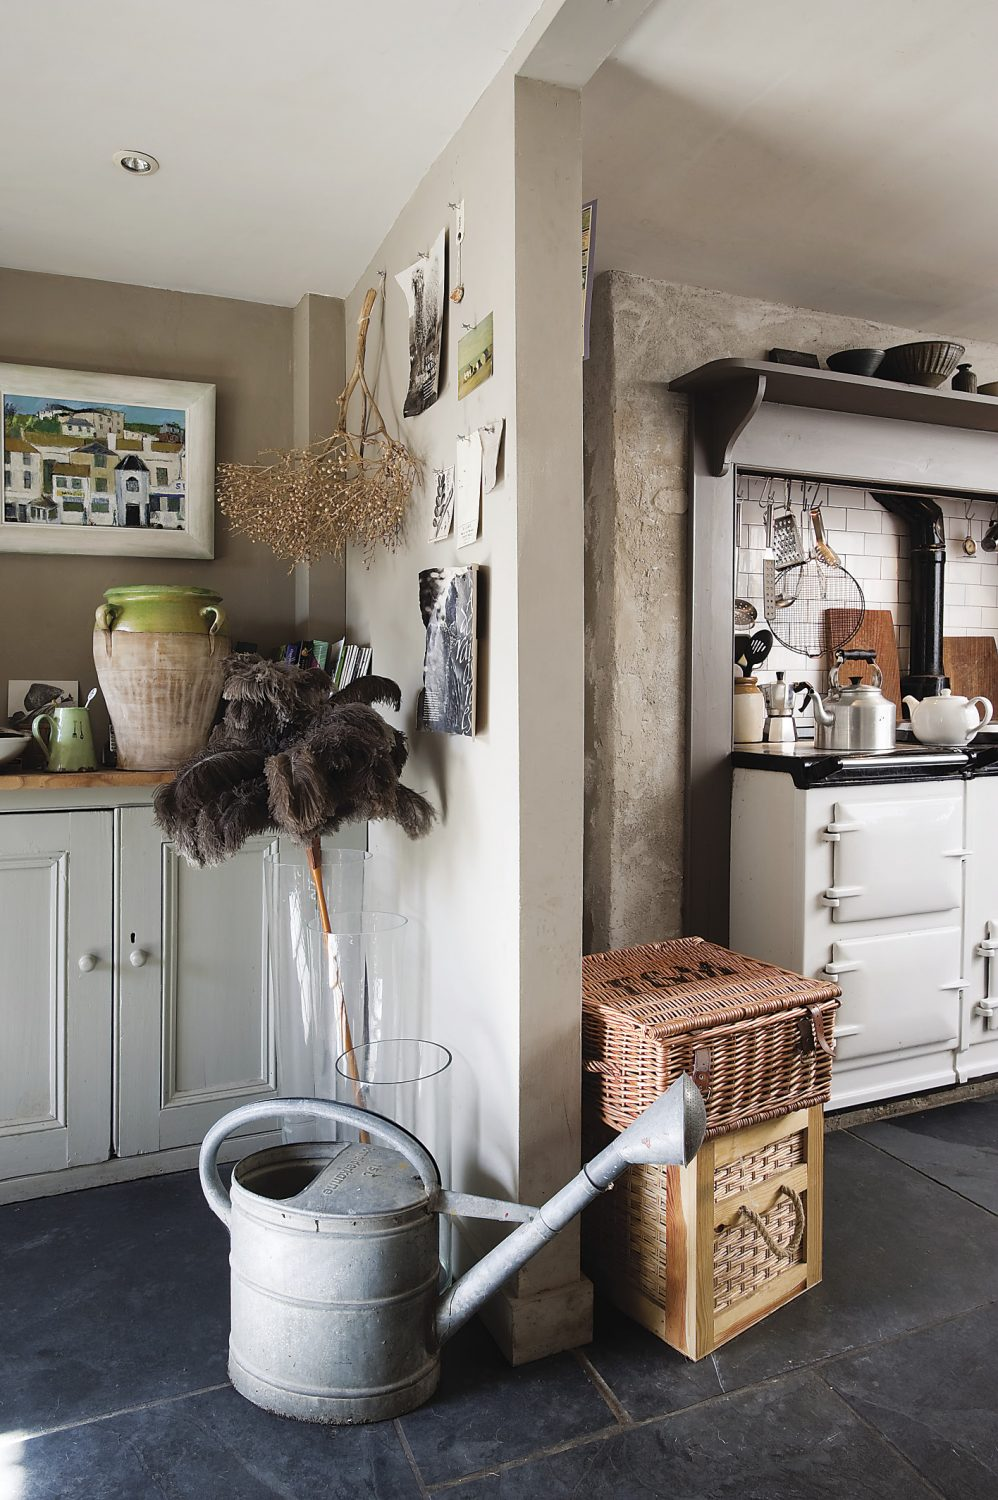 An Aga was installed to warm things up